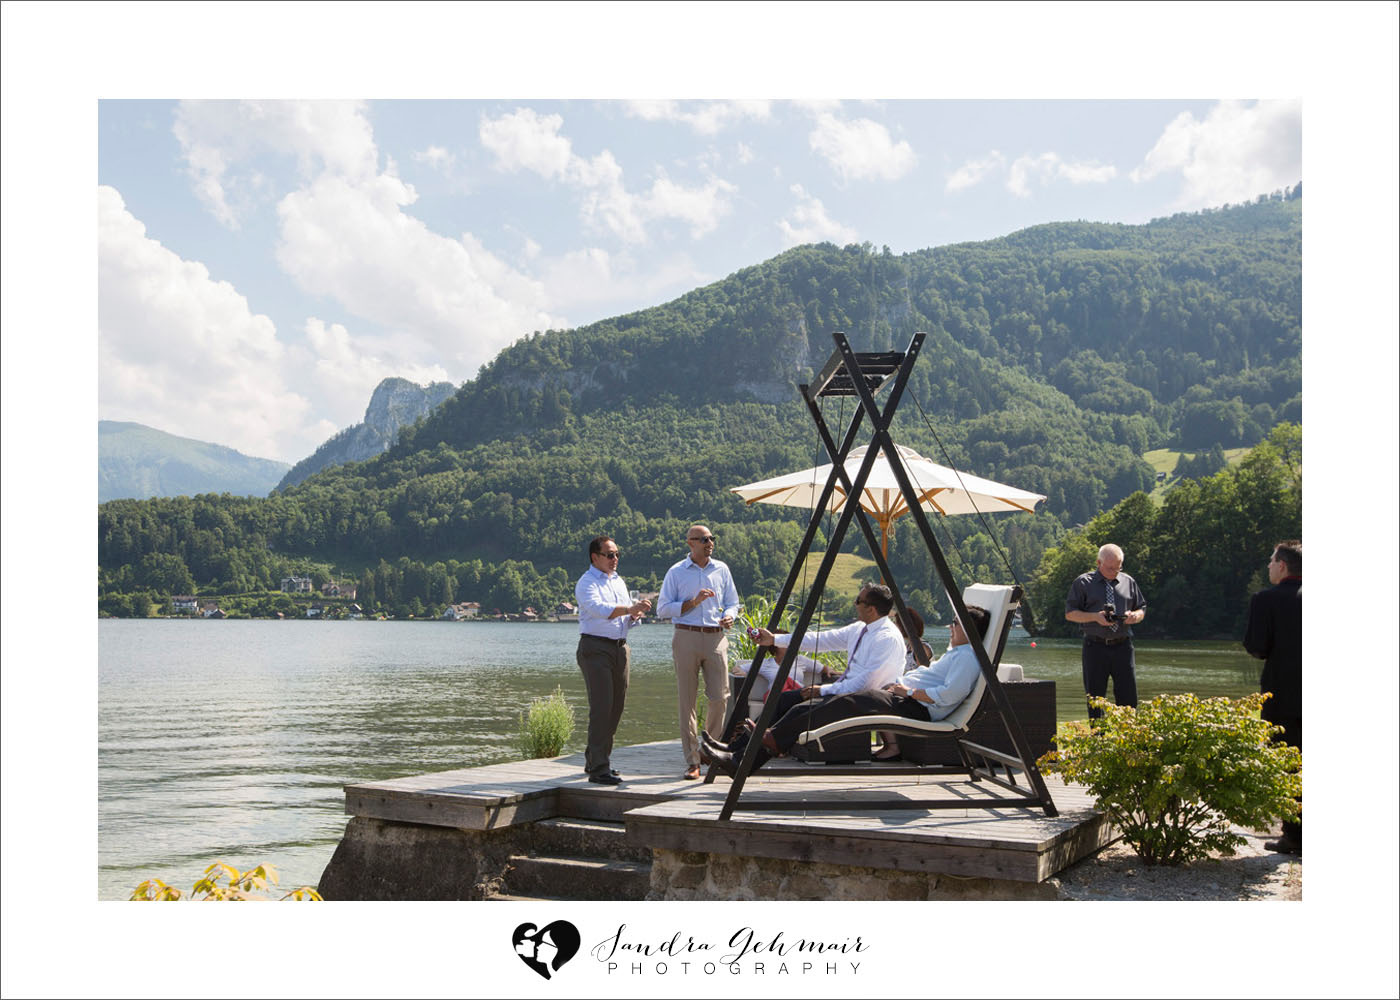 014_heiraten_am_see_spitzvilla_sandra_gehmair